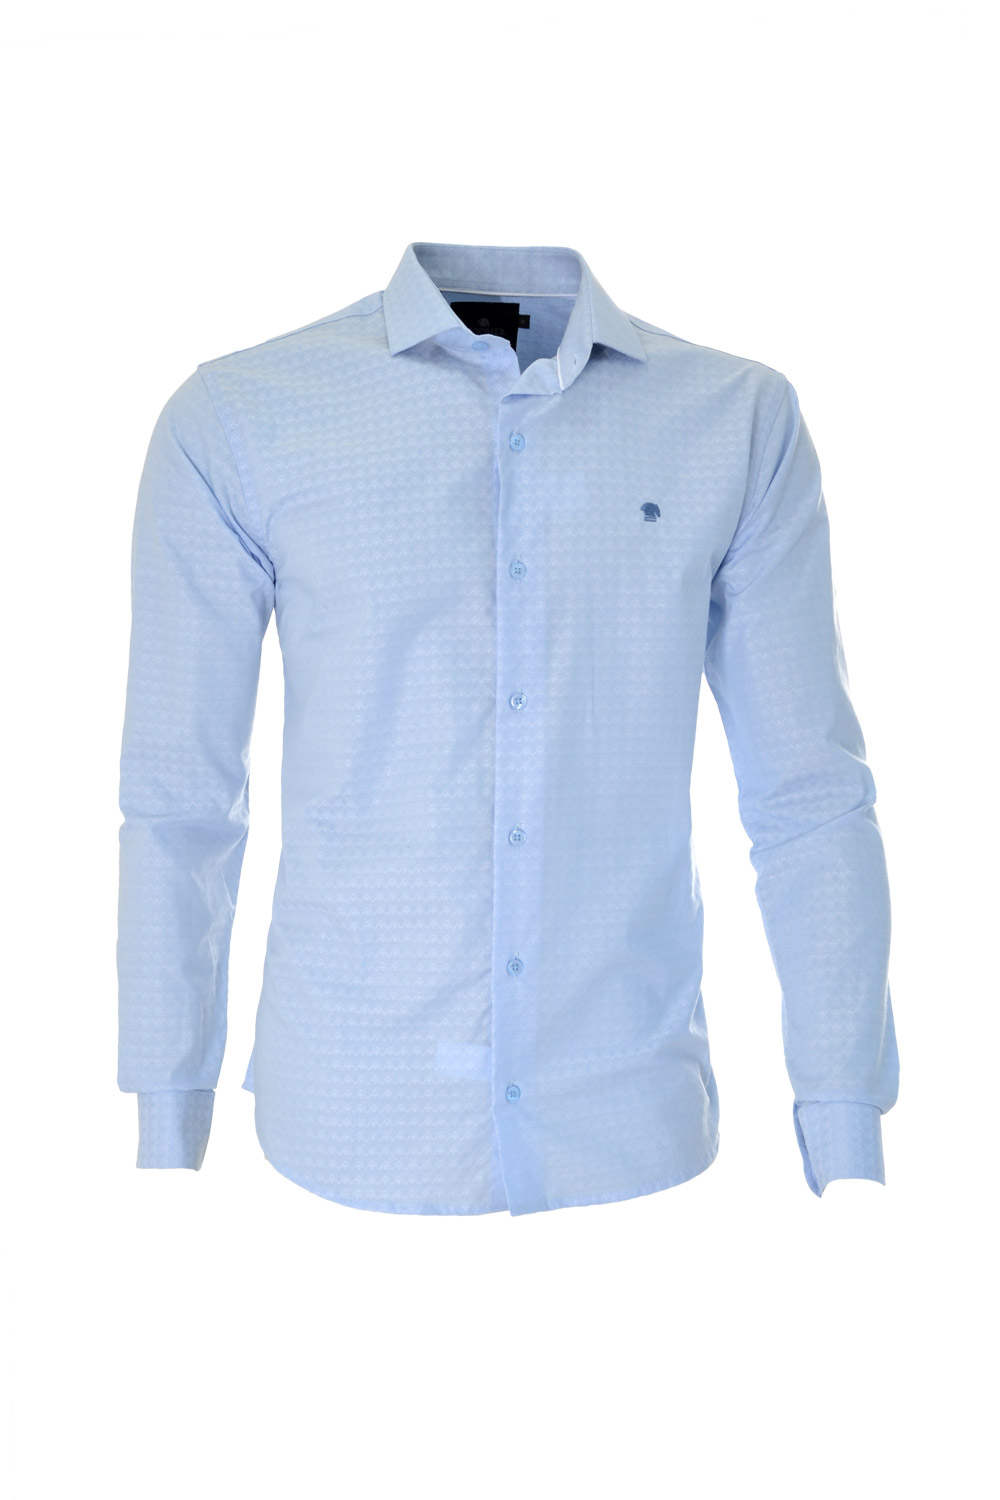 CAMISA ML FASHION SUPER SLIM ALGODAO FIO TINTO MAQUINETADA GELO